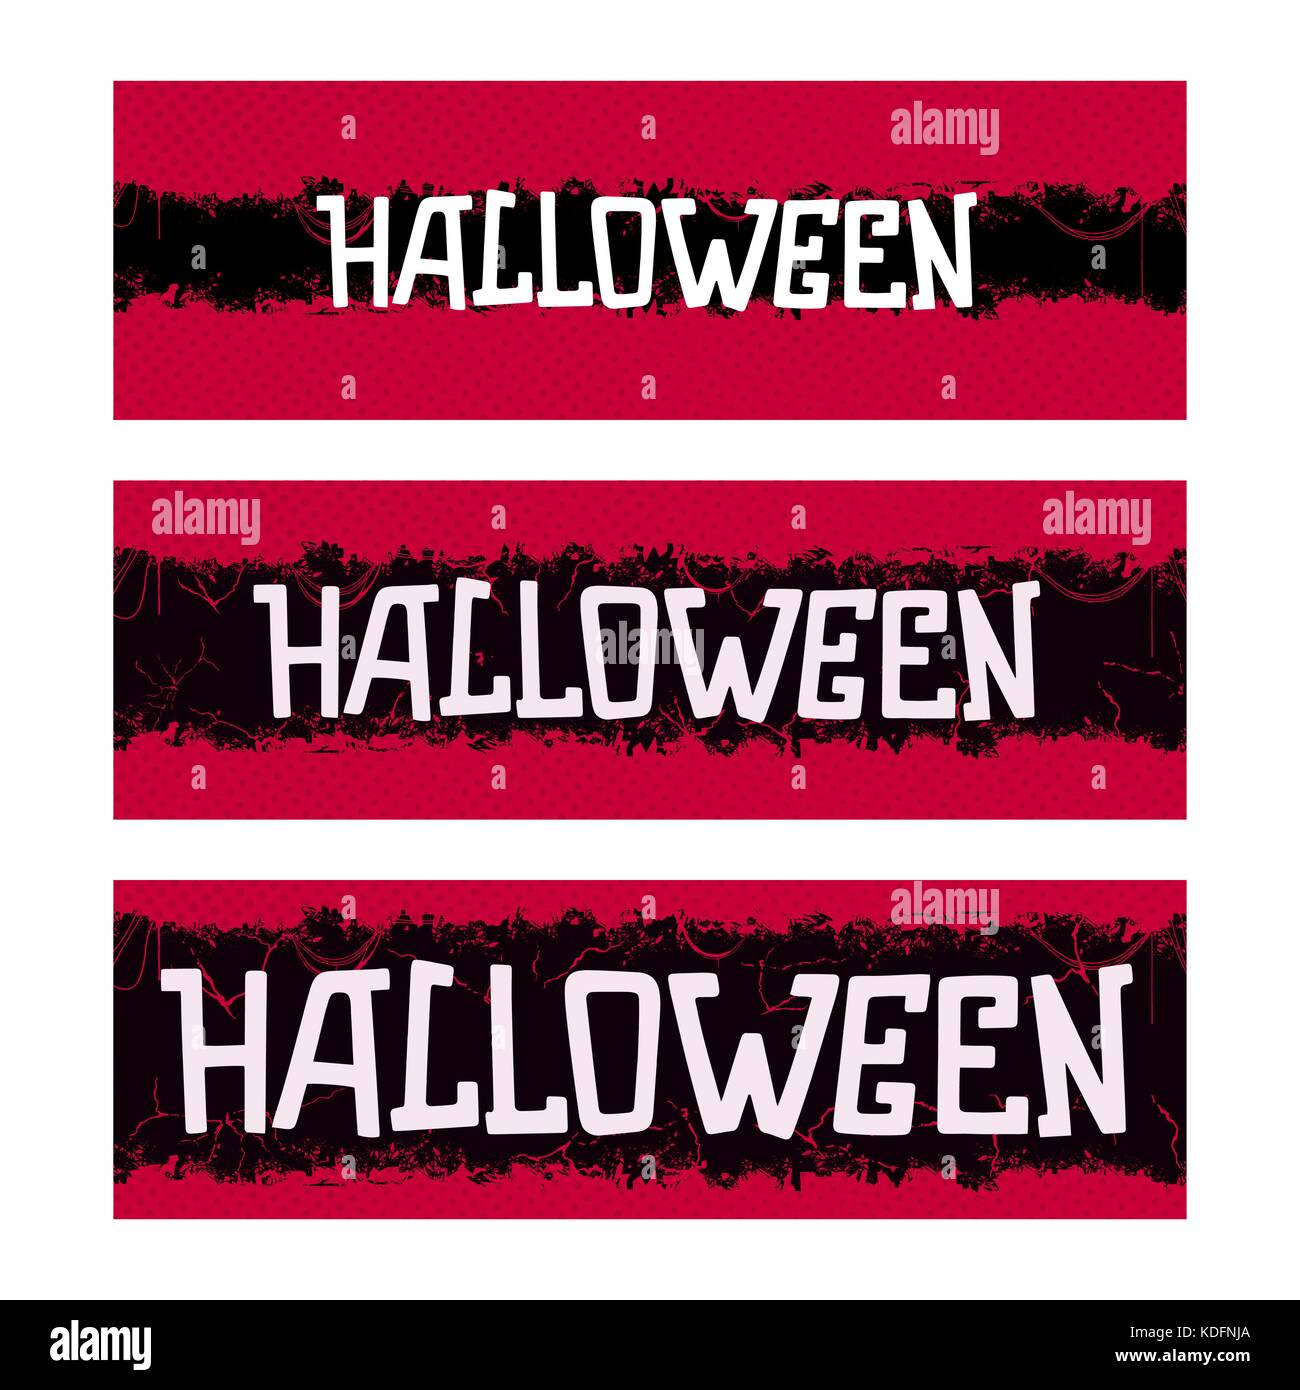 Halloween. Creative thematic horizontal banner. Horror style template. Vector illustration - Stock Image